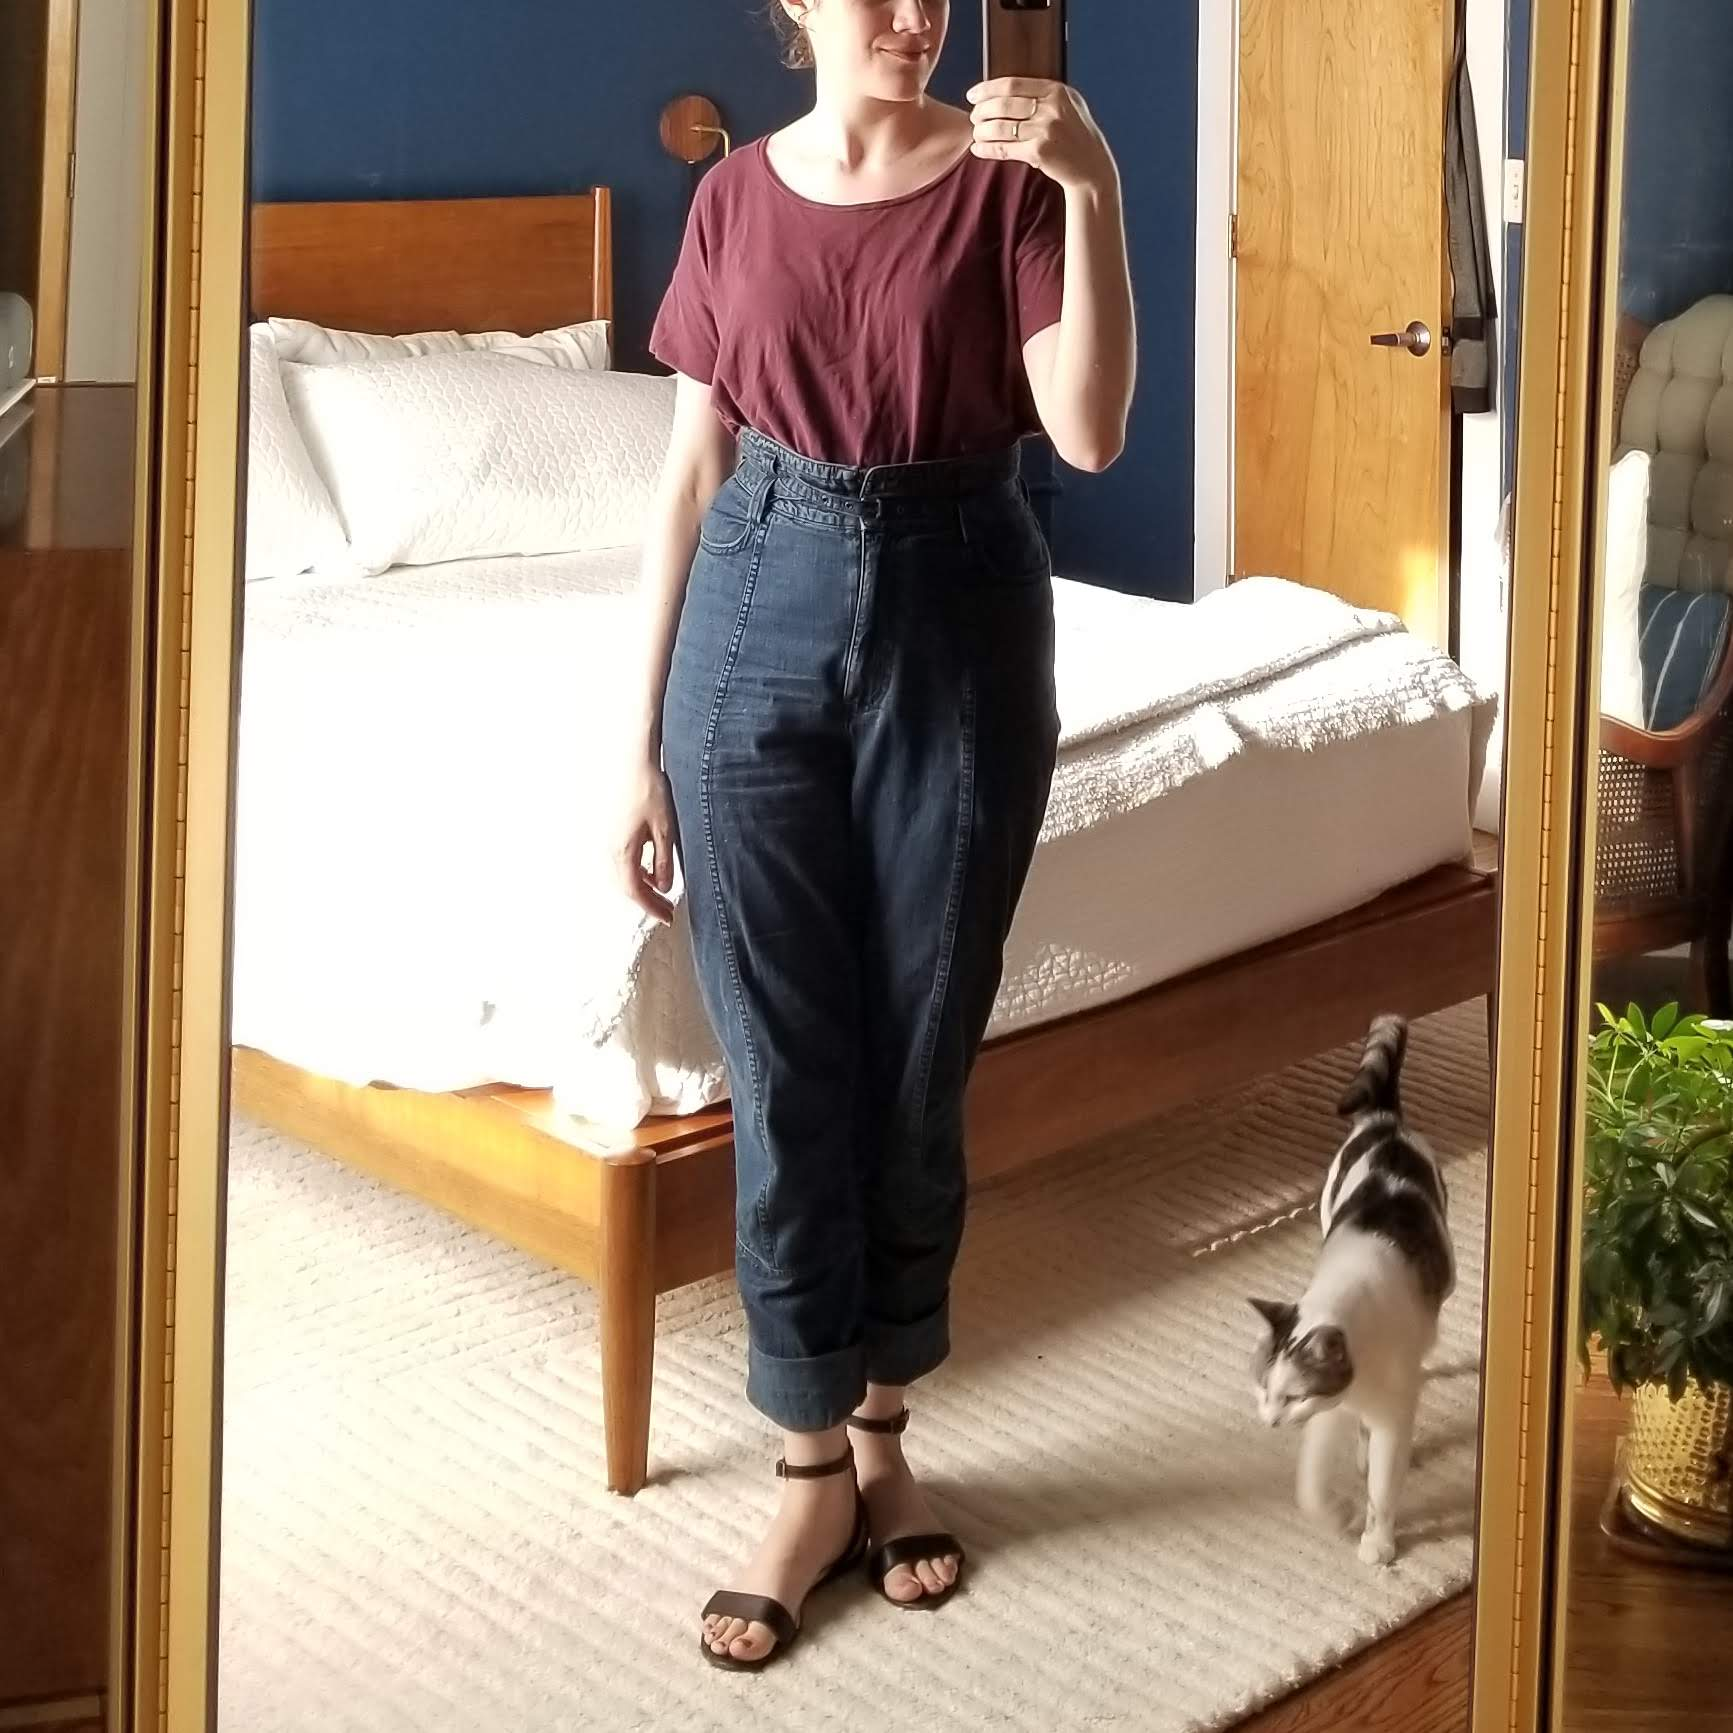 Wednesday - June 6, 2018Although I've worn this look a lot, I felt kind of drab and slouchy in it today. Not sure what was going on, might have been an off day in general. I'll try pairing these pants with a fitted tee next time.